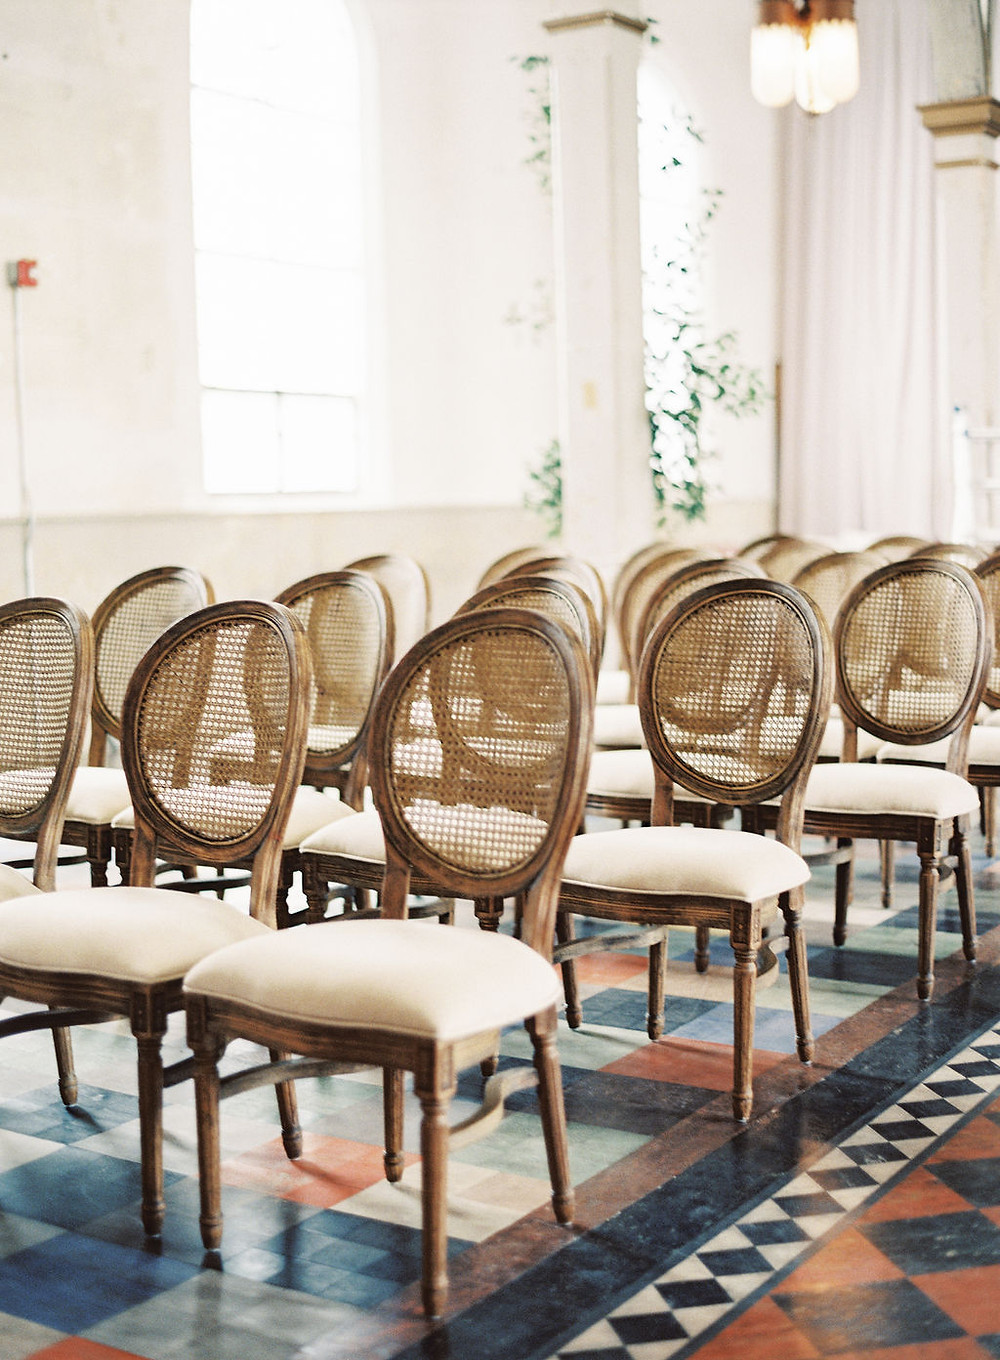 Caned Louis Chairs for Bridgerton Inspired Ceremony at the Marigny Opera House in New Orleans with decor and furniture by Lovegood Rentals